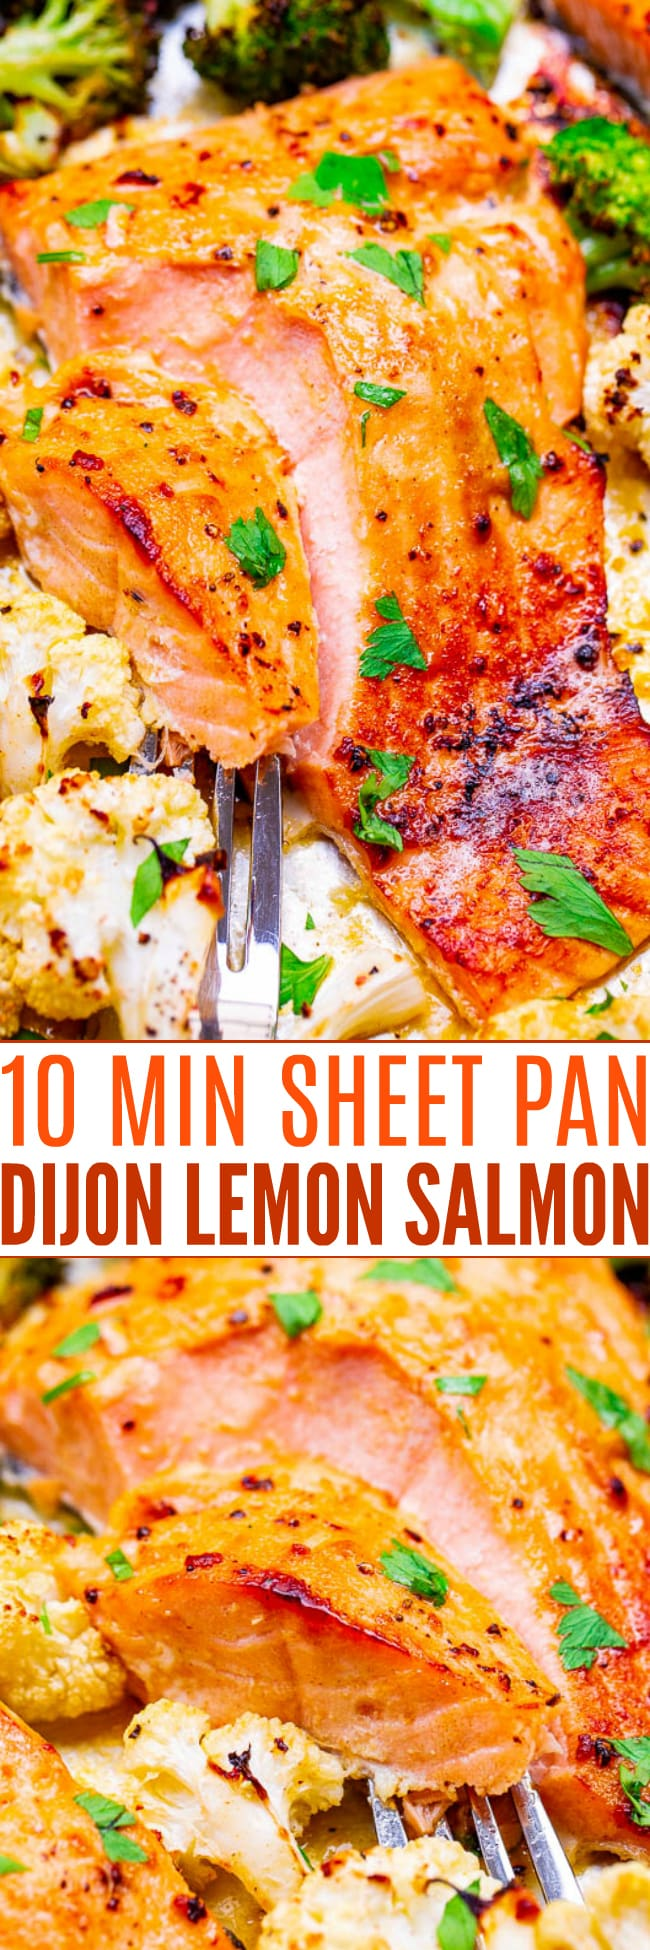 10-Minute Sheet Pan Dijon Lemon Salmon and Vegetables - Juicy salmon and crisp-tender vegetables coated with a buttery Dijon honey lemon sauce for an explosion of FLAVOR!! So EASY and ready so FAST!!